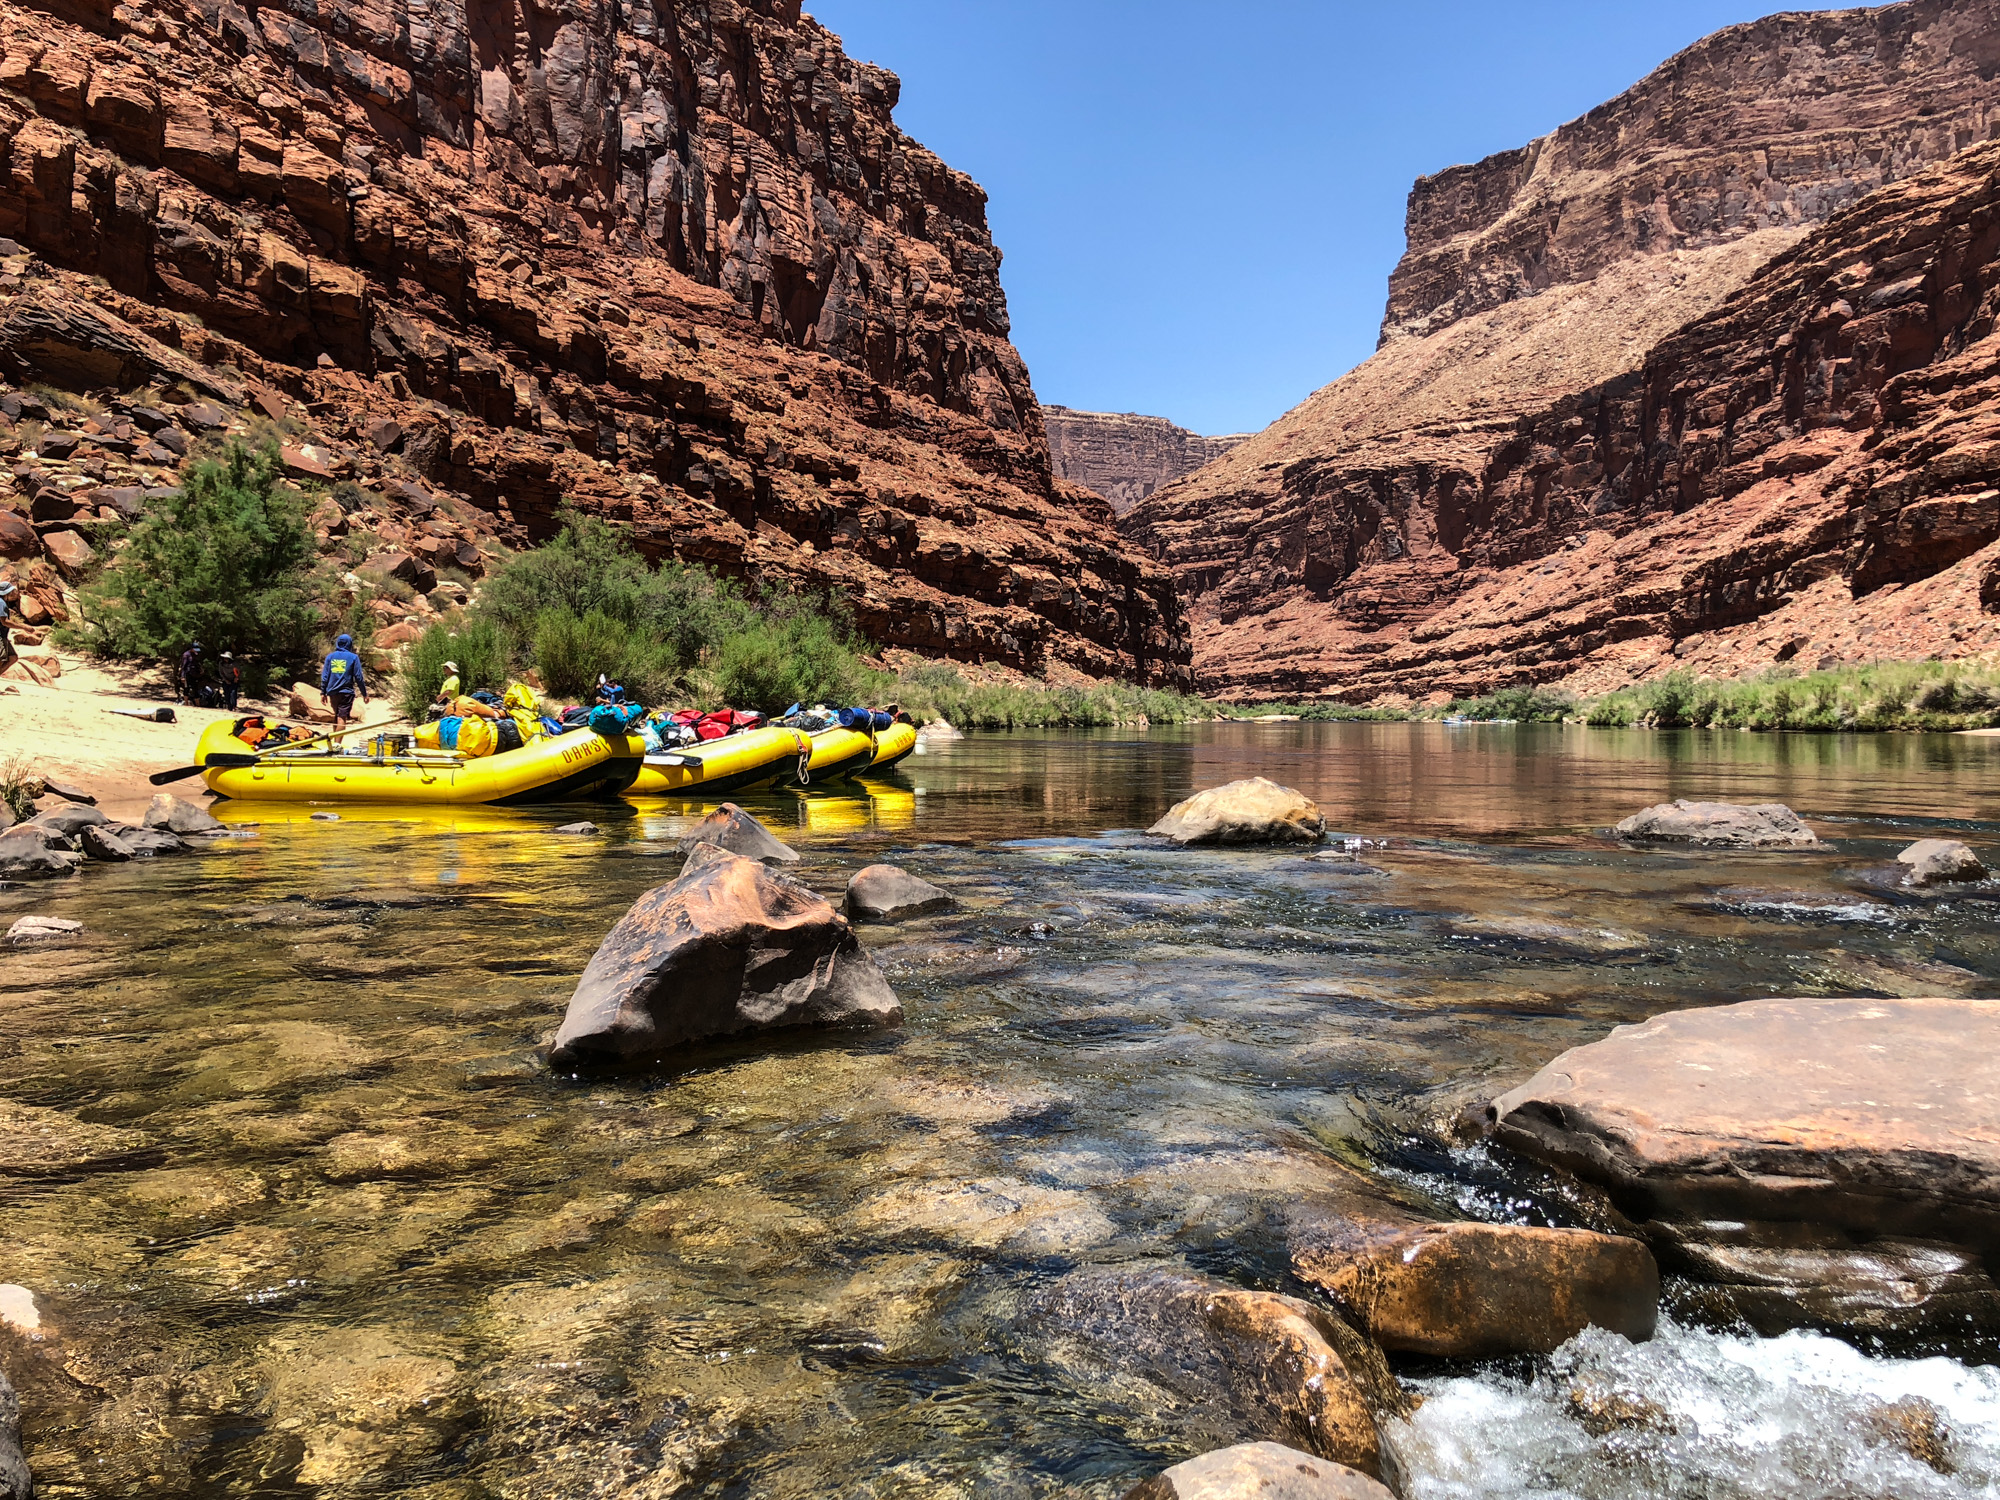 Lunch Stop on the Colorado river